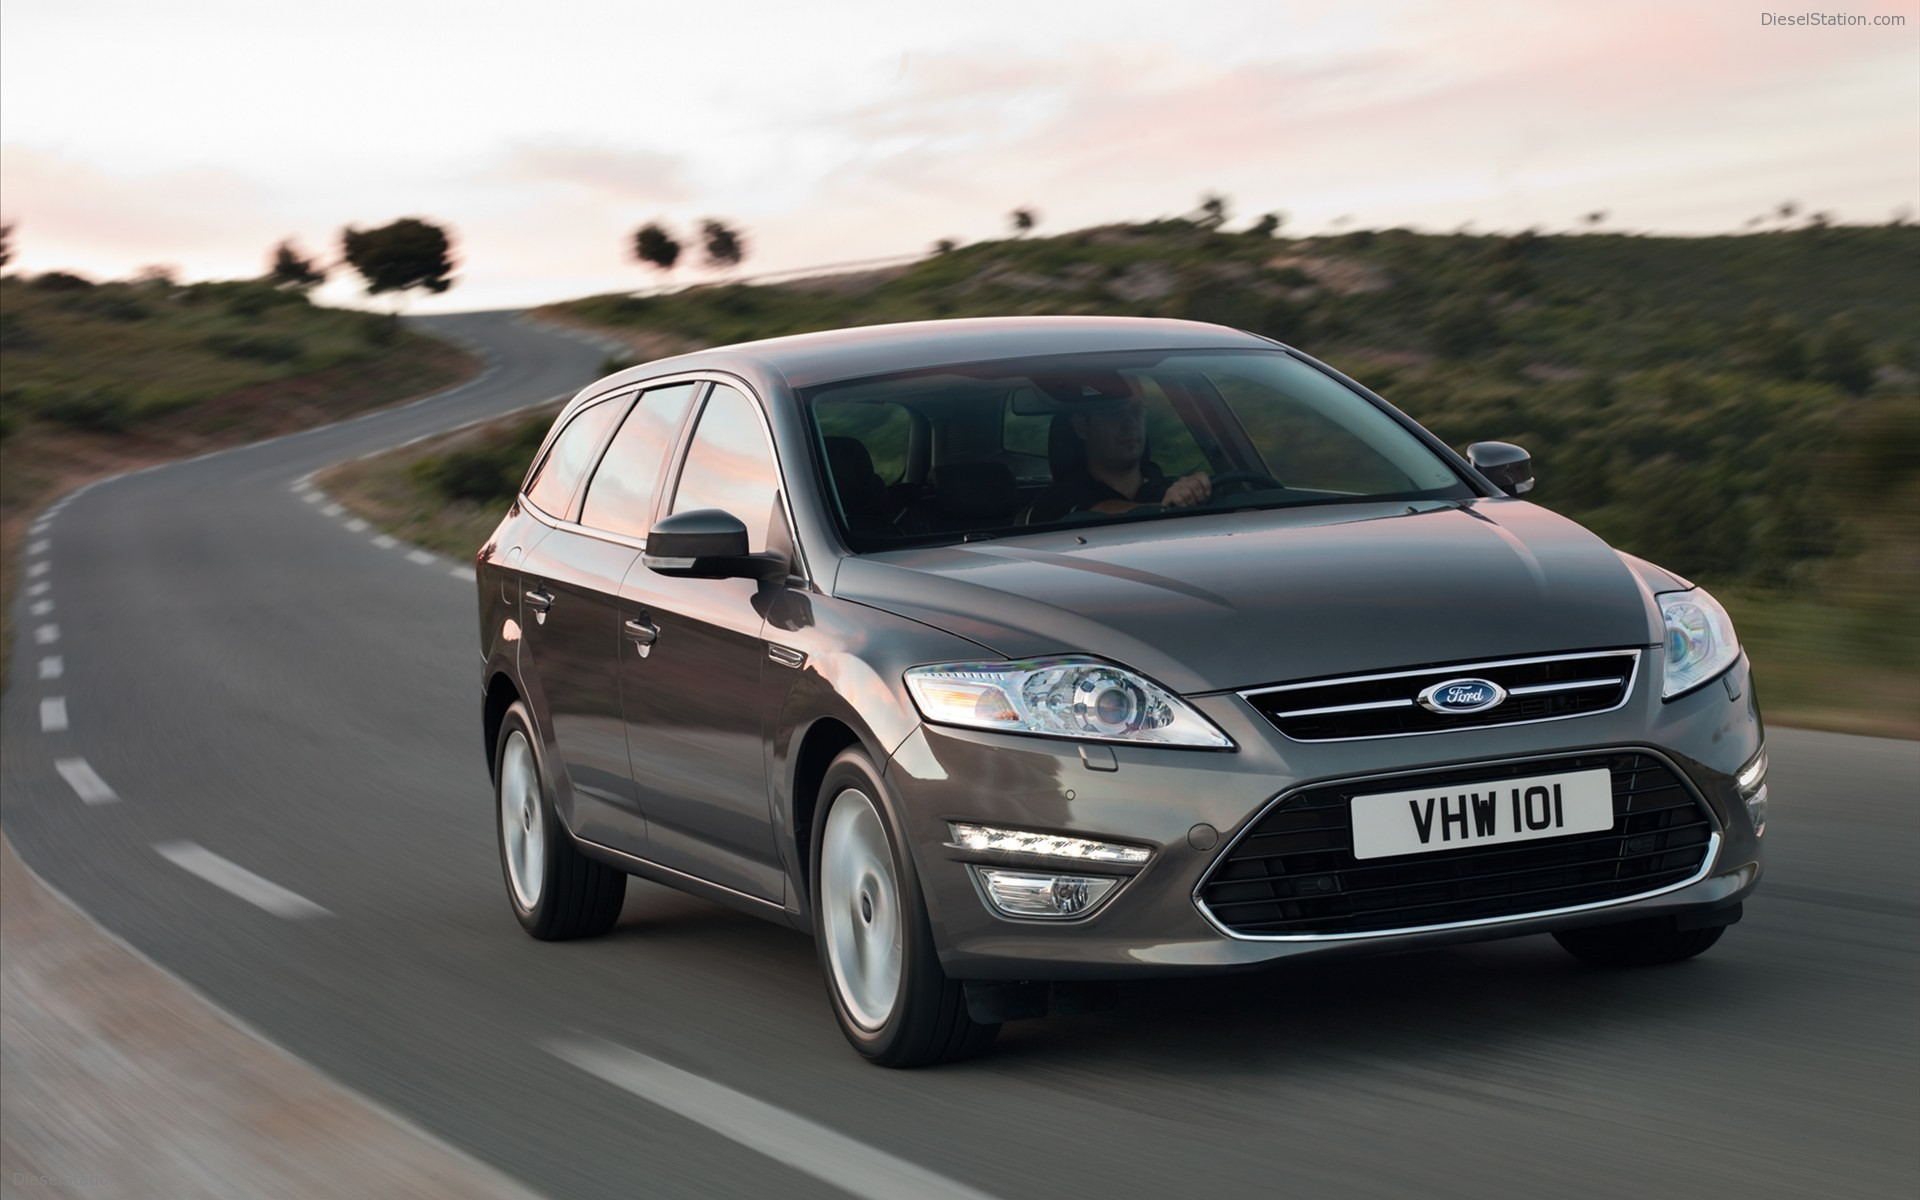 2010 Ford Mondeo Wagon Wagon 5-door